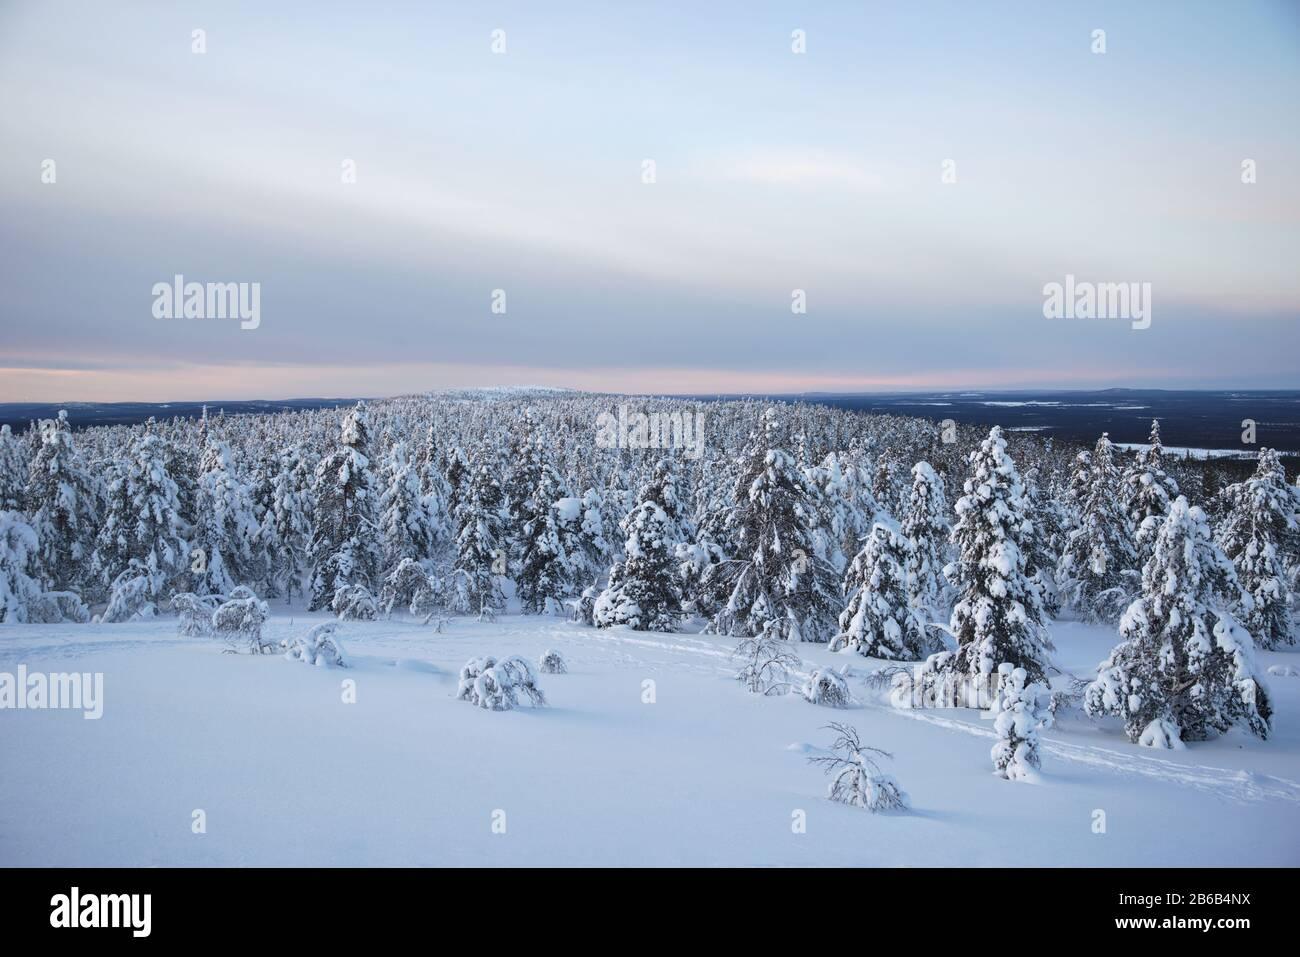 Snow covered trees in Lapland, Finland create a wonderful and beautiful winter wonderland landscape during sunset. They're called popcorn trees. Stock Photo